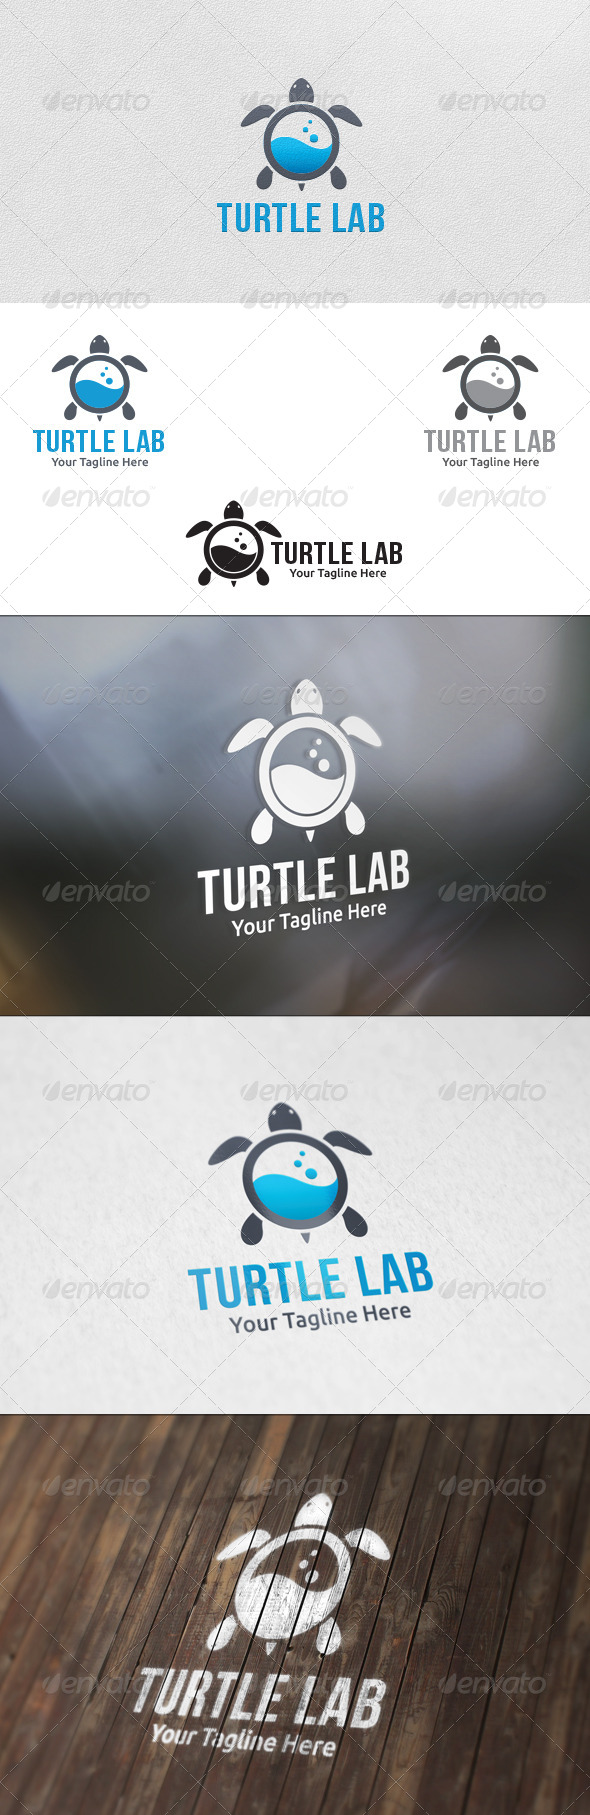 GraphicRiver Turtle Lab Logo Template 5860795